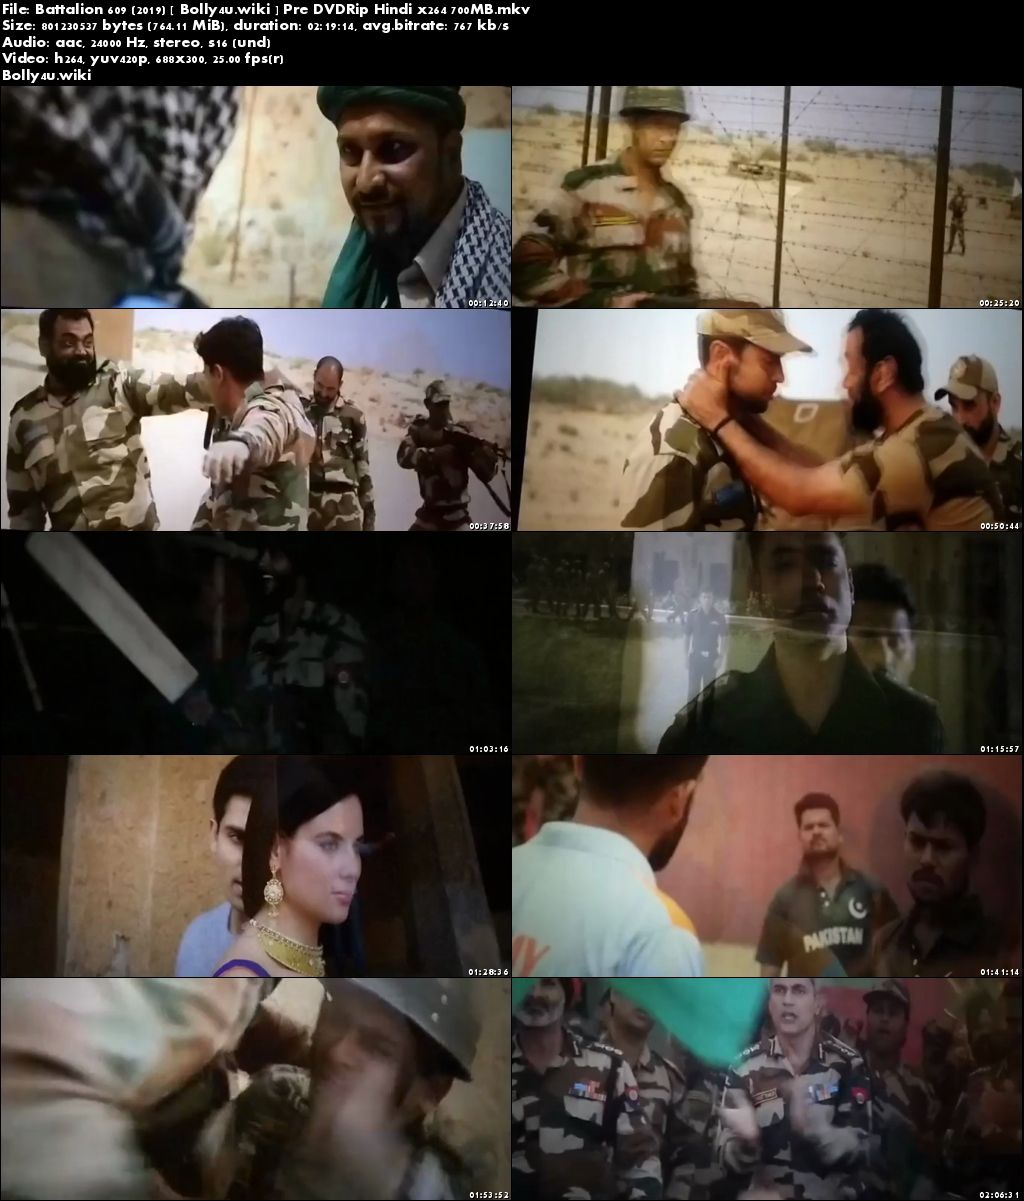 Battalion 609 (2019) Pre DVDRip 400Mb Full Hindi Movie Download 480p